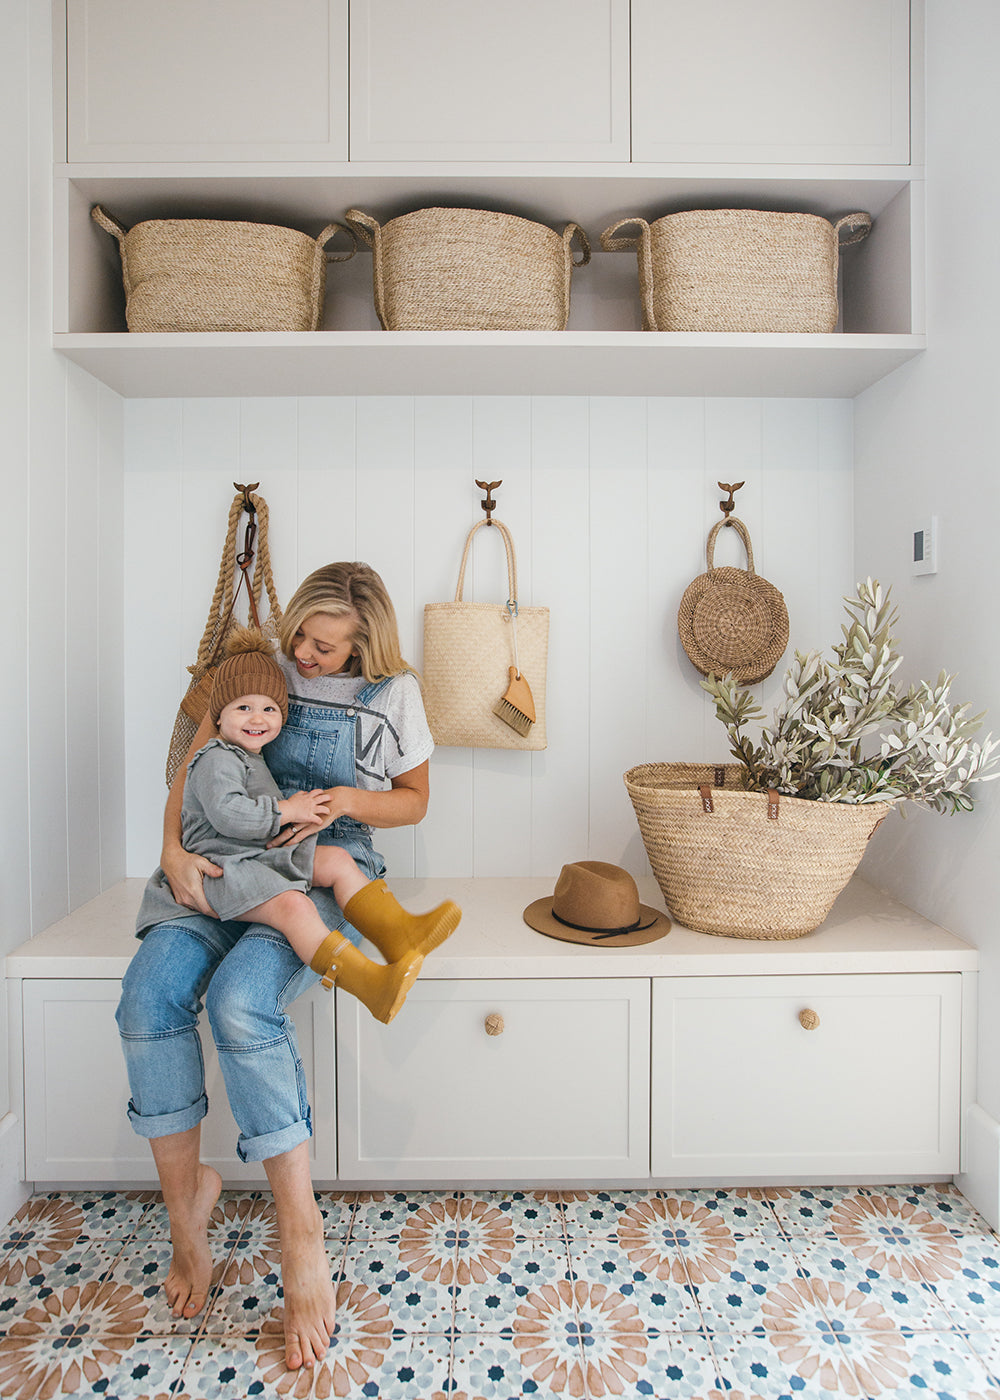 Woven baskets in Kara Demmrich's mudroom. Kara & her son playing in the foreground.